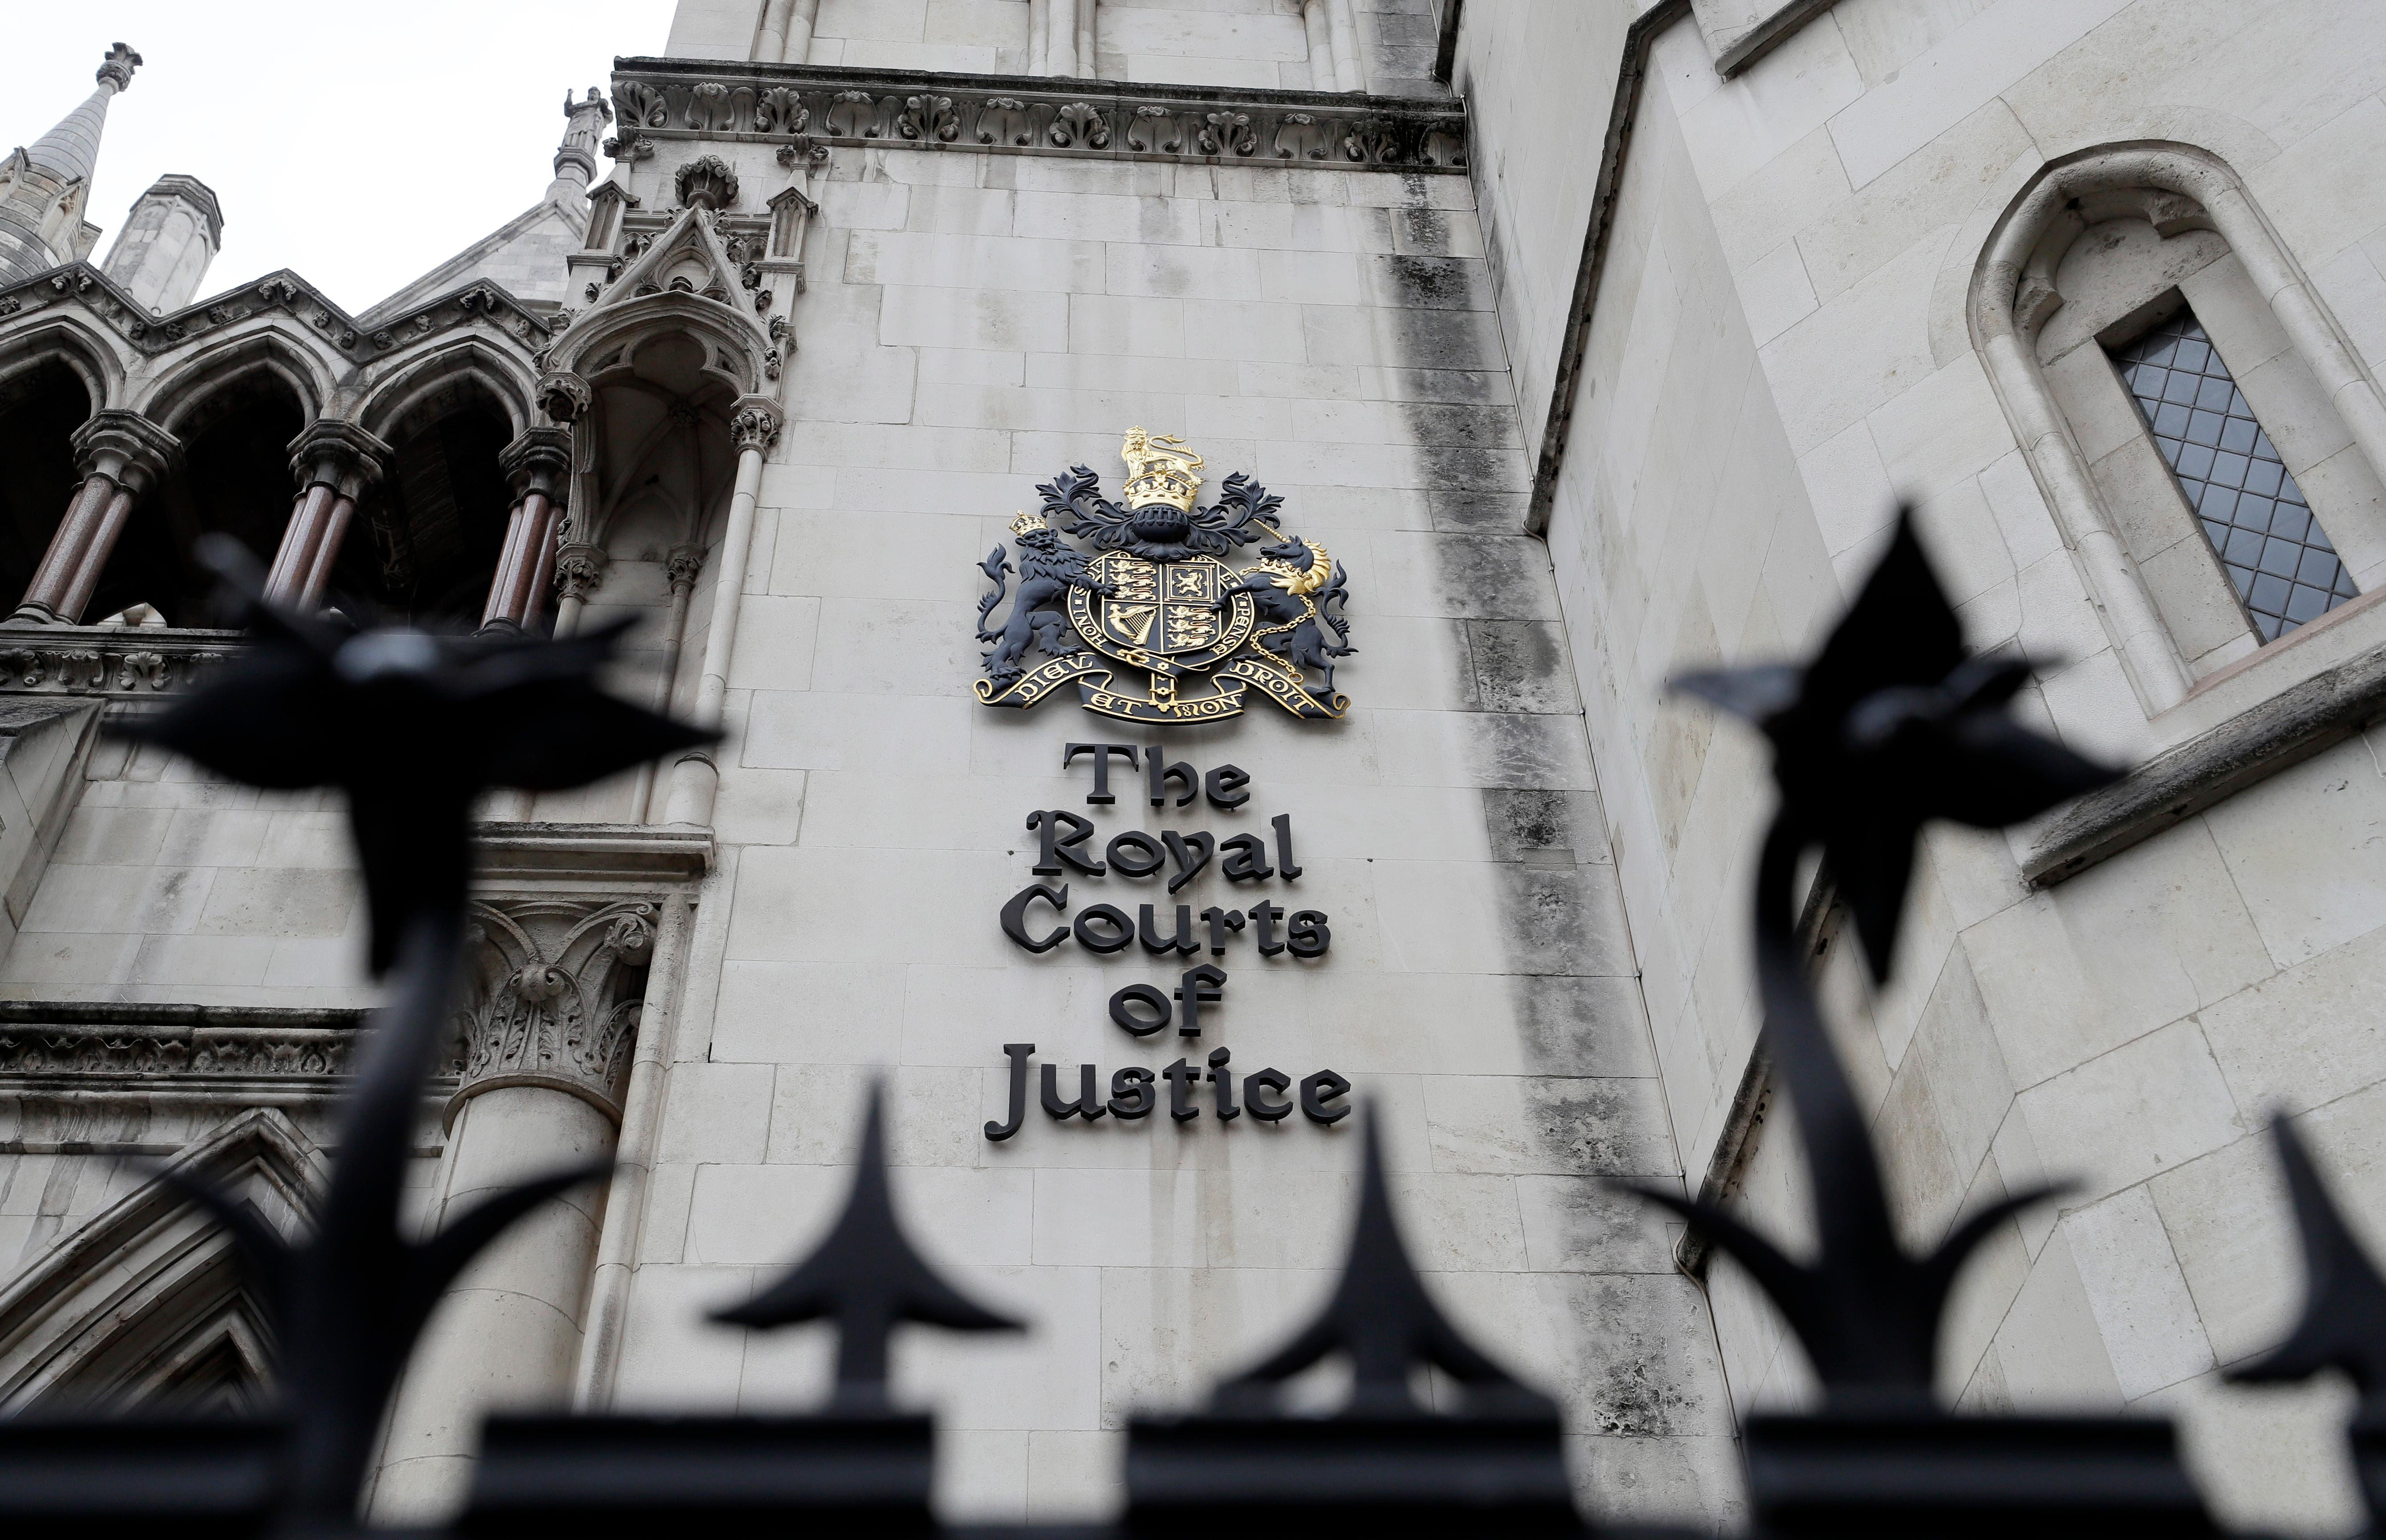 A view of The Royal Courts of Justice also known as The High Court in London, Tuesday, July 30, 2019. Sheikh Mohammed bin Rashid al-Maktoum has made an application to divorce his wife of 15 years, Princess Haya Bint al-Hussein, in the Family Court Division of the High Court. (AP Photo/Kirsty Wigglesworth)